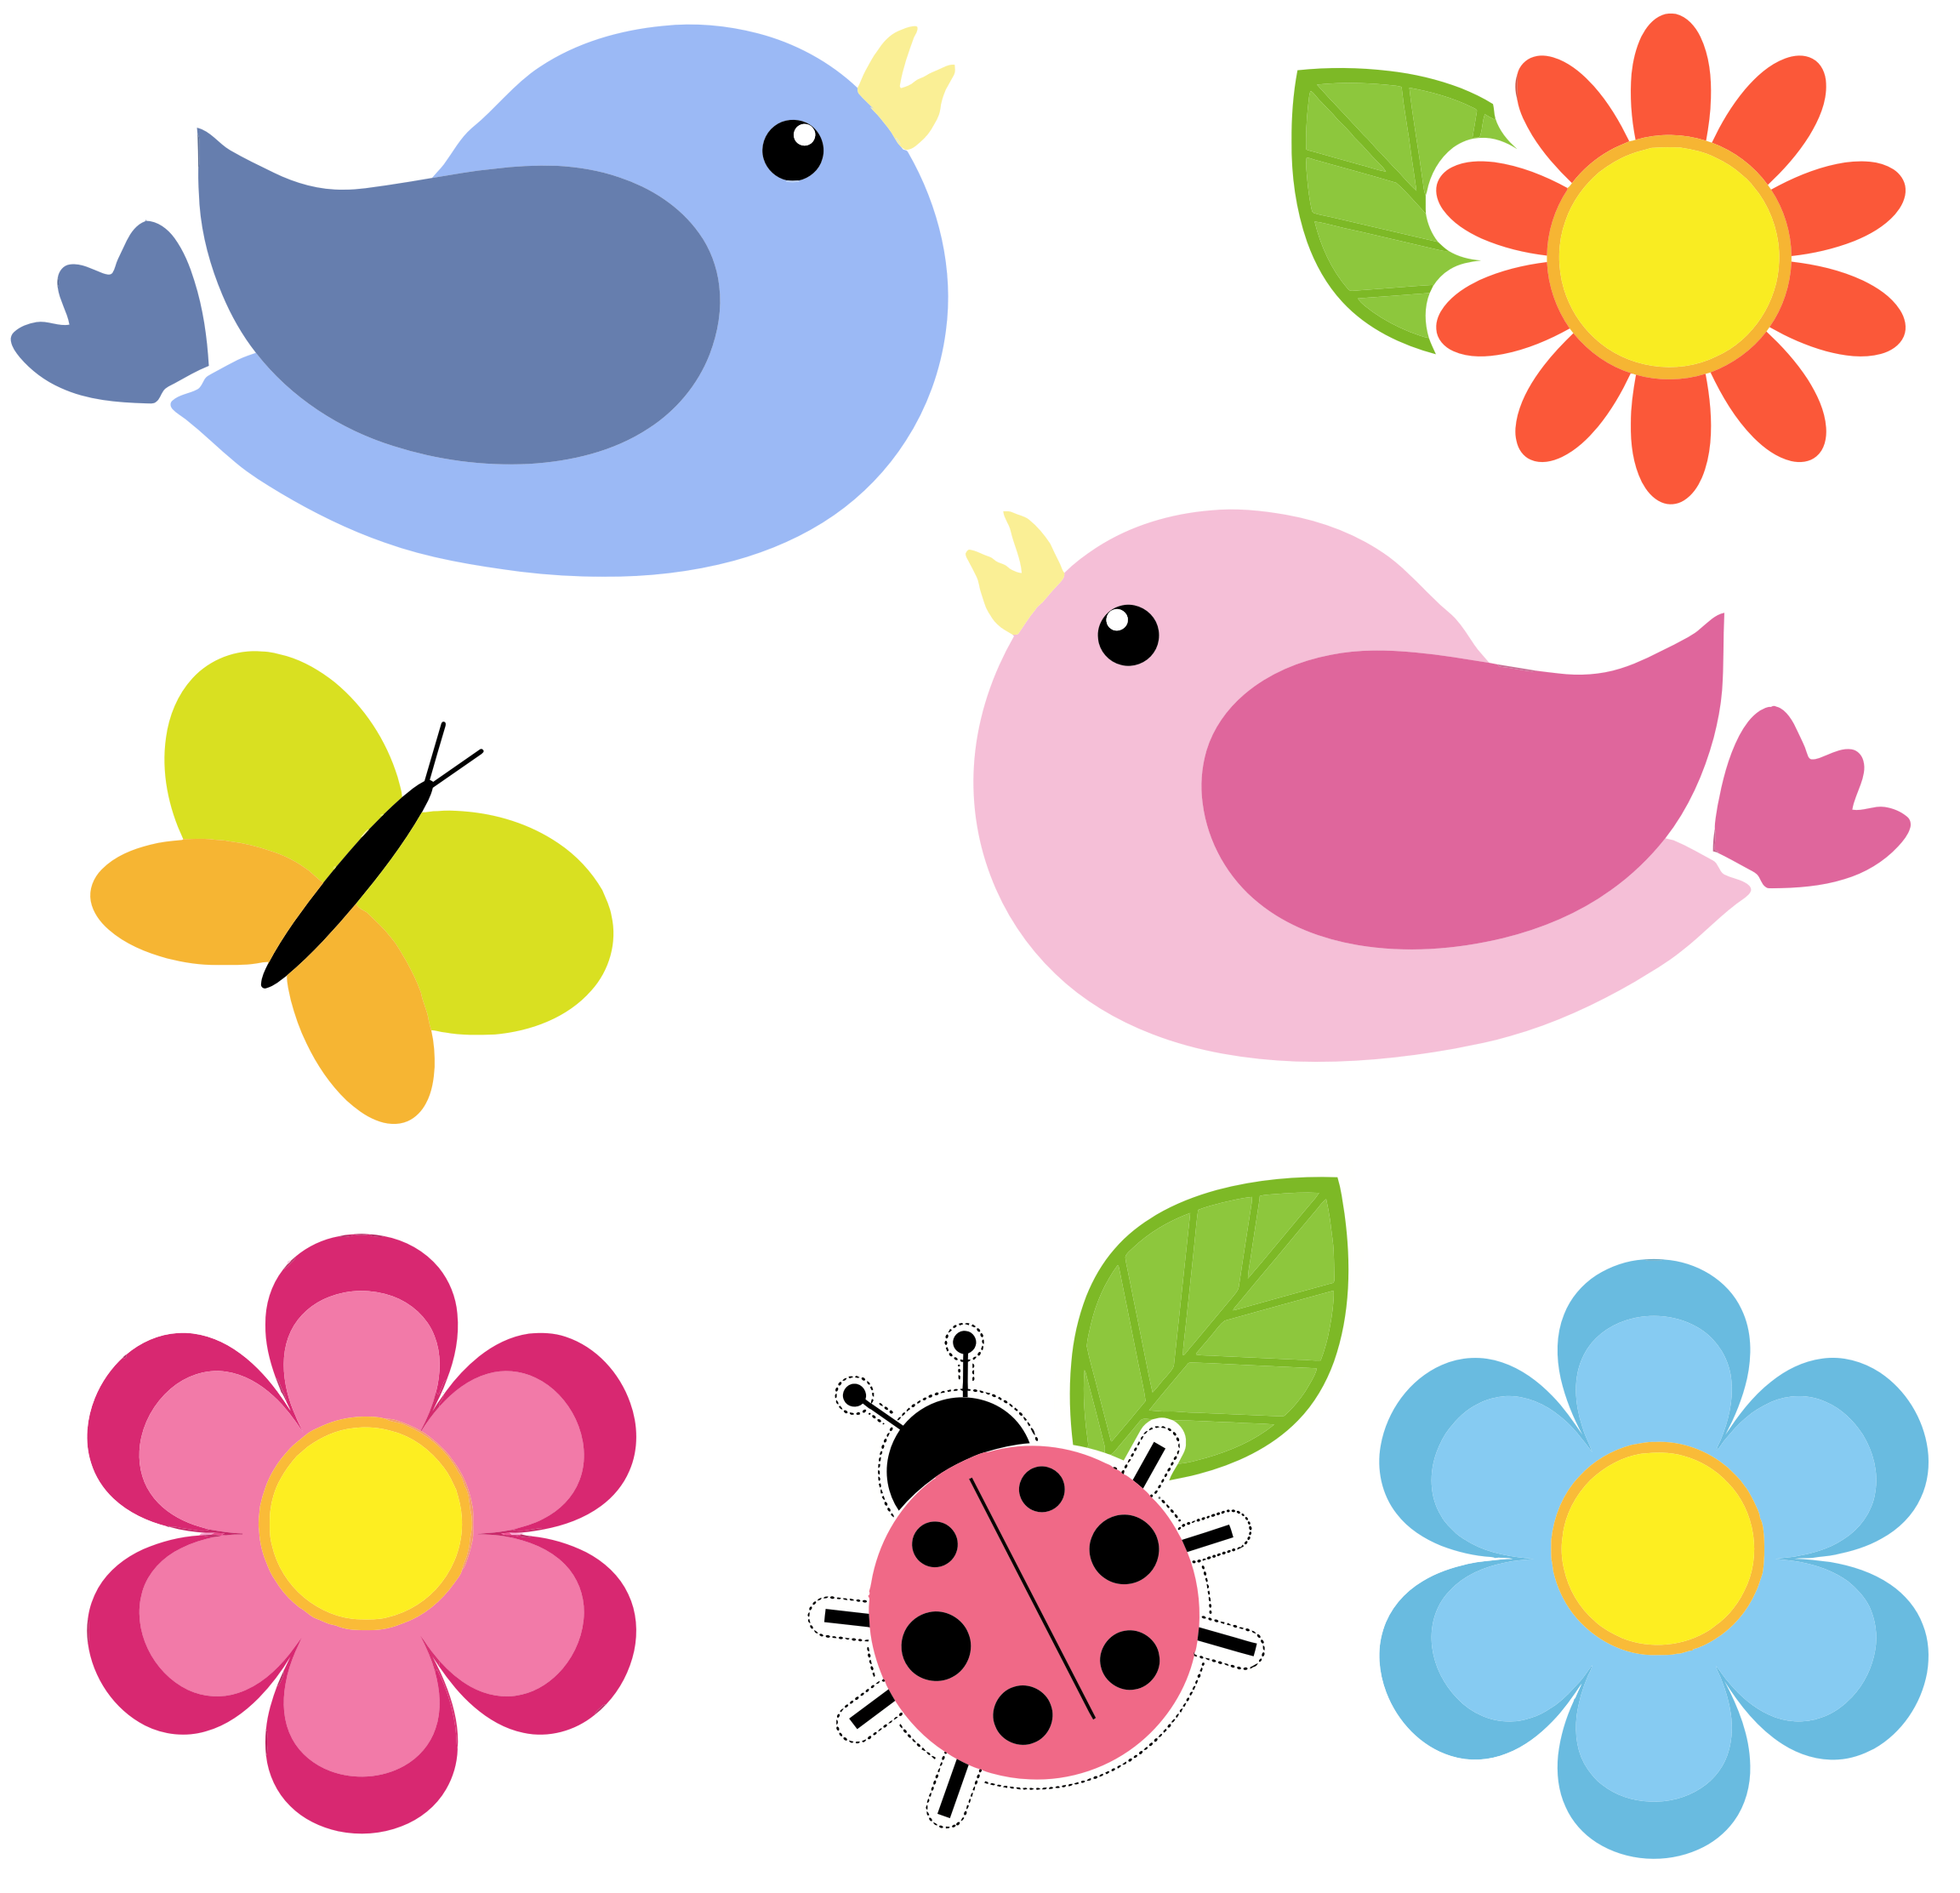 Flowers and butterfly clipart graphic royalty free stock Clipart - Birds Butterfly Ladybug And Flowers No Background graphic royalty free stock